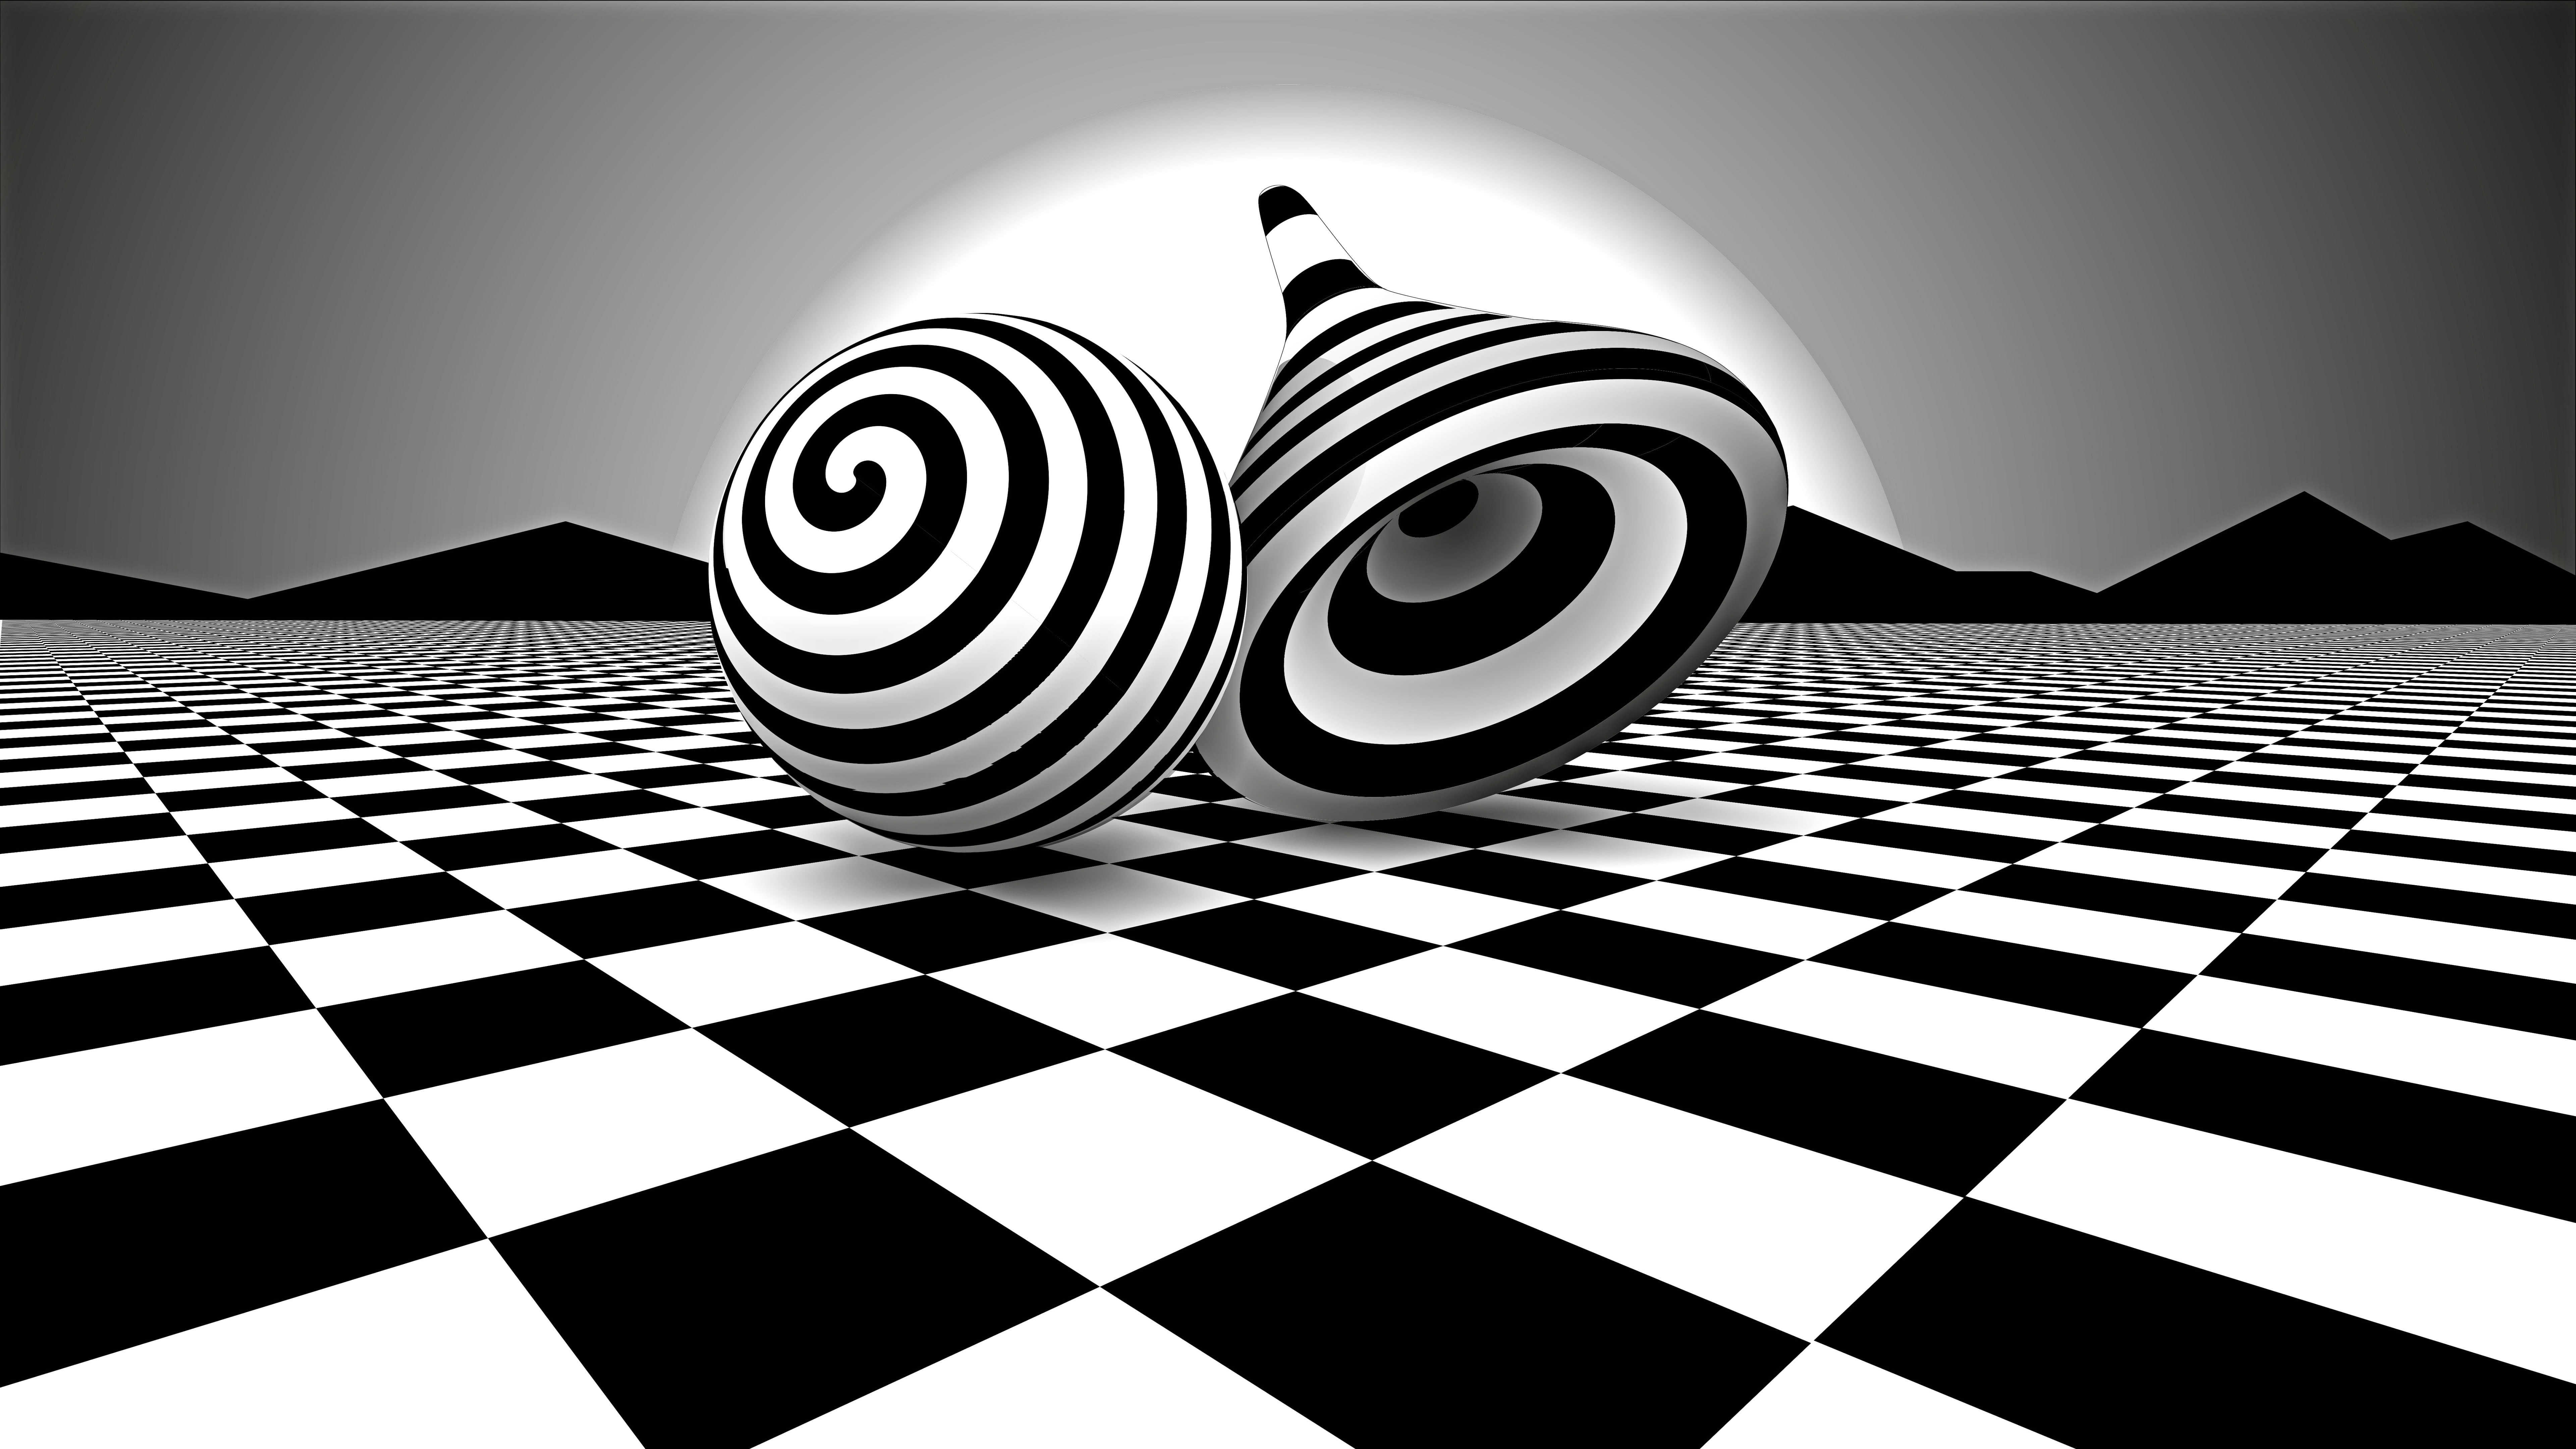 black and white optical illusion uhd 8k wallpaper